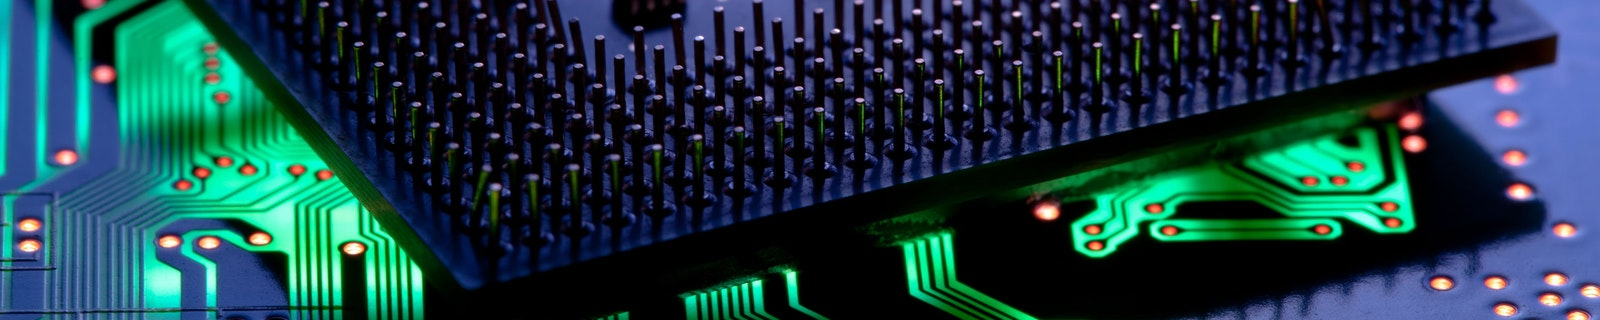 Computer chip closeup